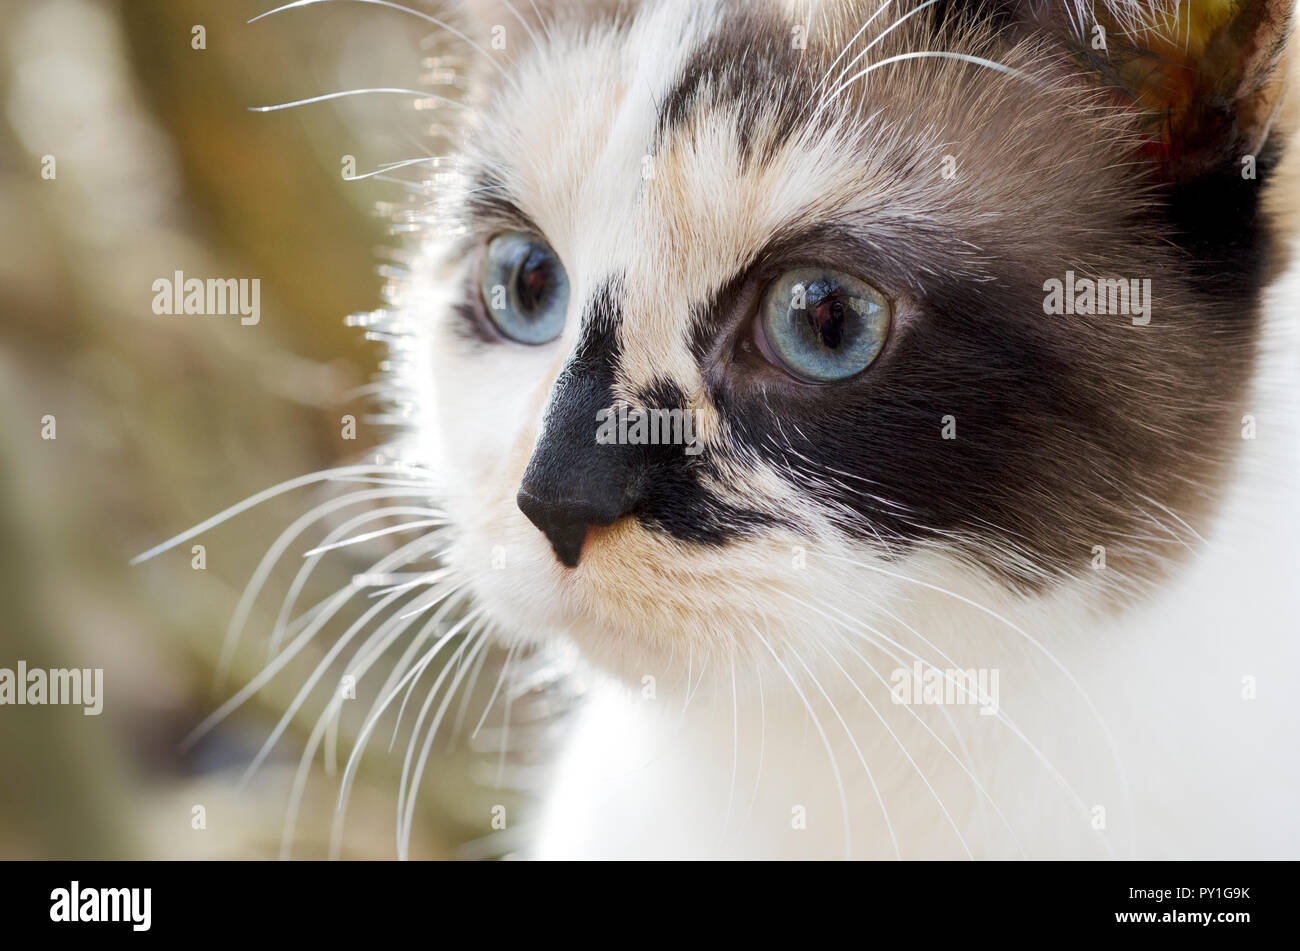 Close-up of a calico cat - Stock Image